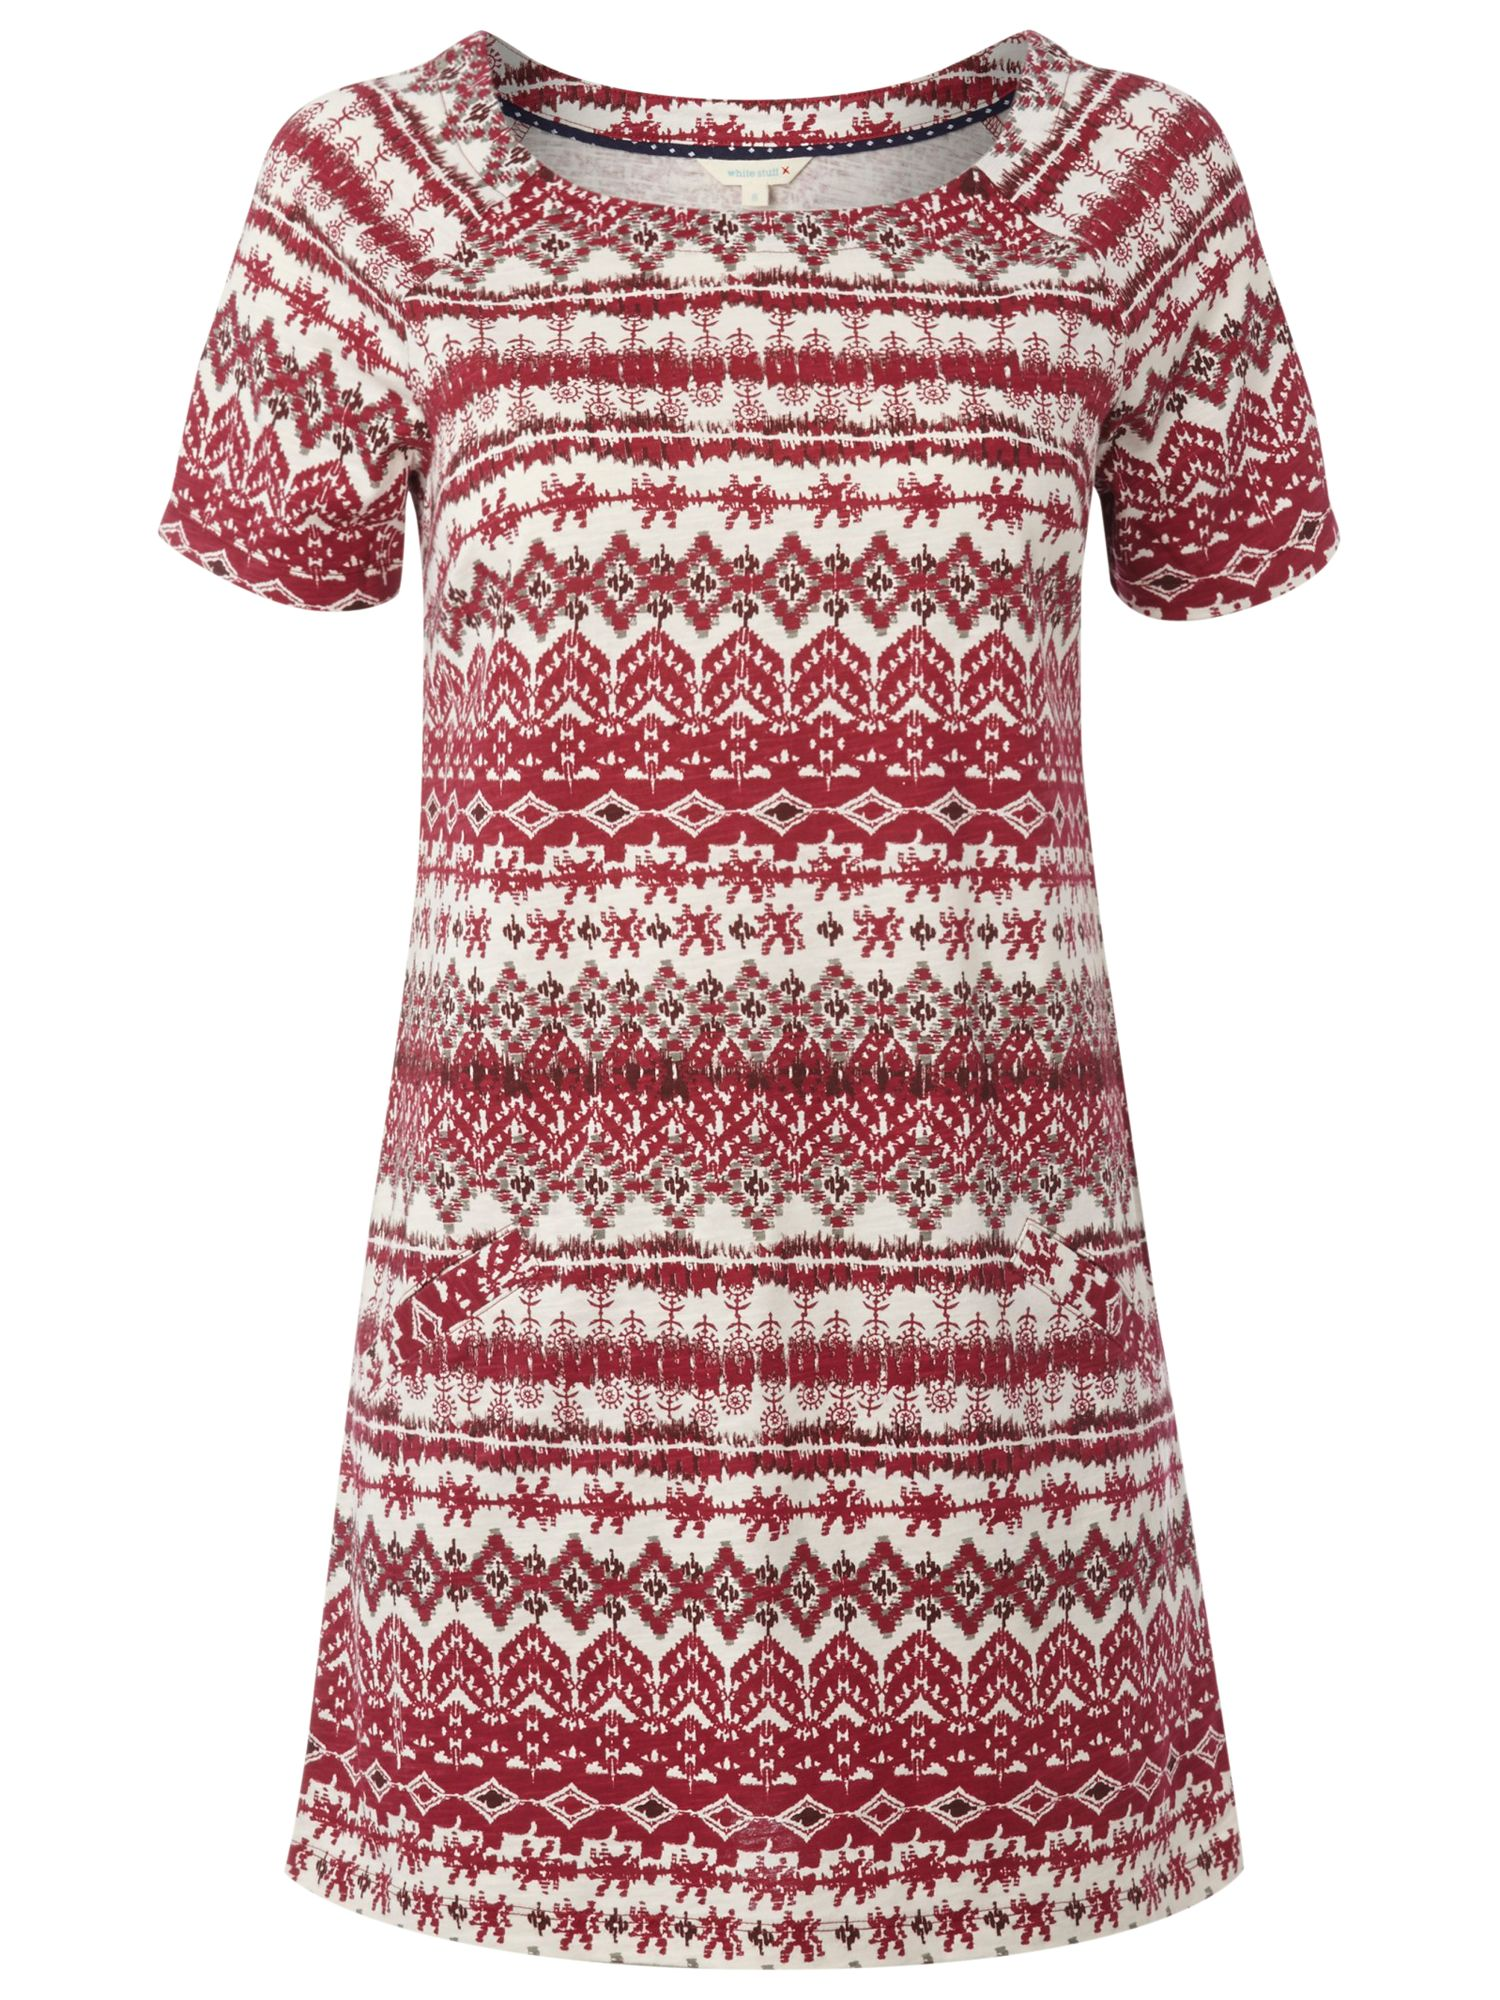 white stuff woodblock tunic coral red, white, stuff, woodblock, tunic, coral, red, white stuff, 14|18|10|16|12|8, women, womens dresses, brands l-z, 1925766